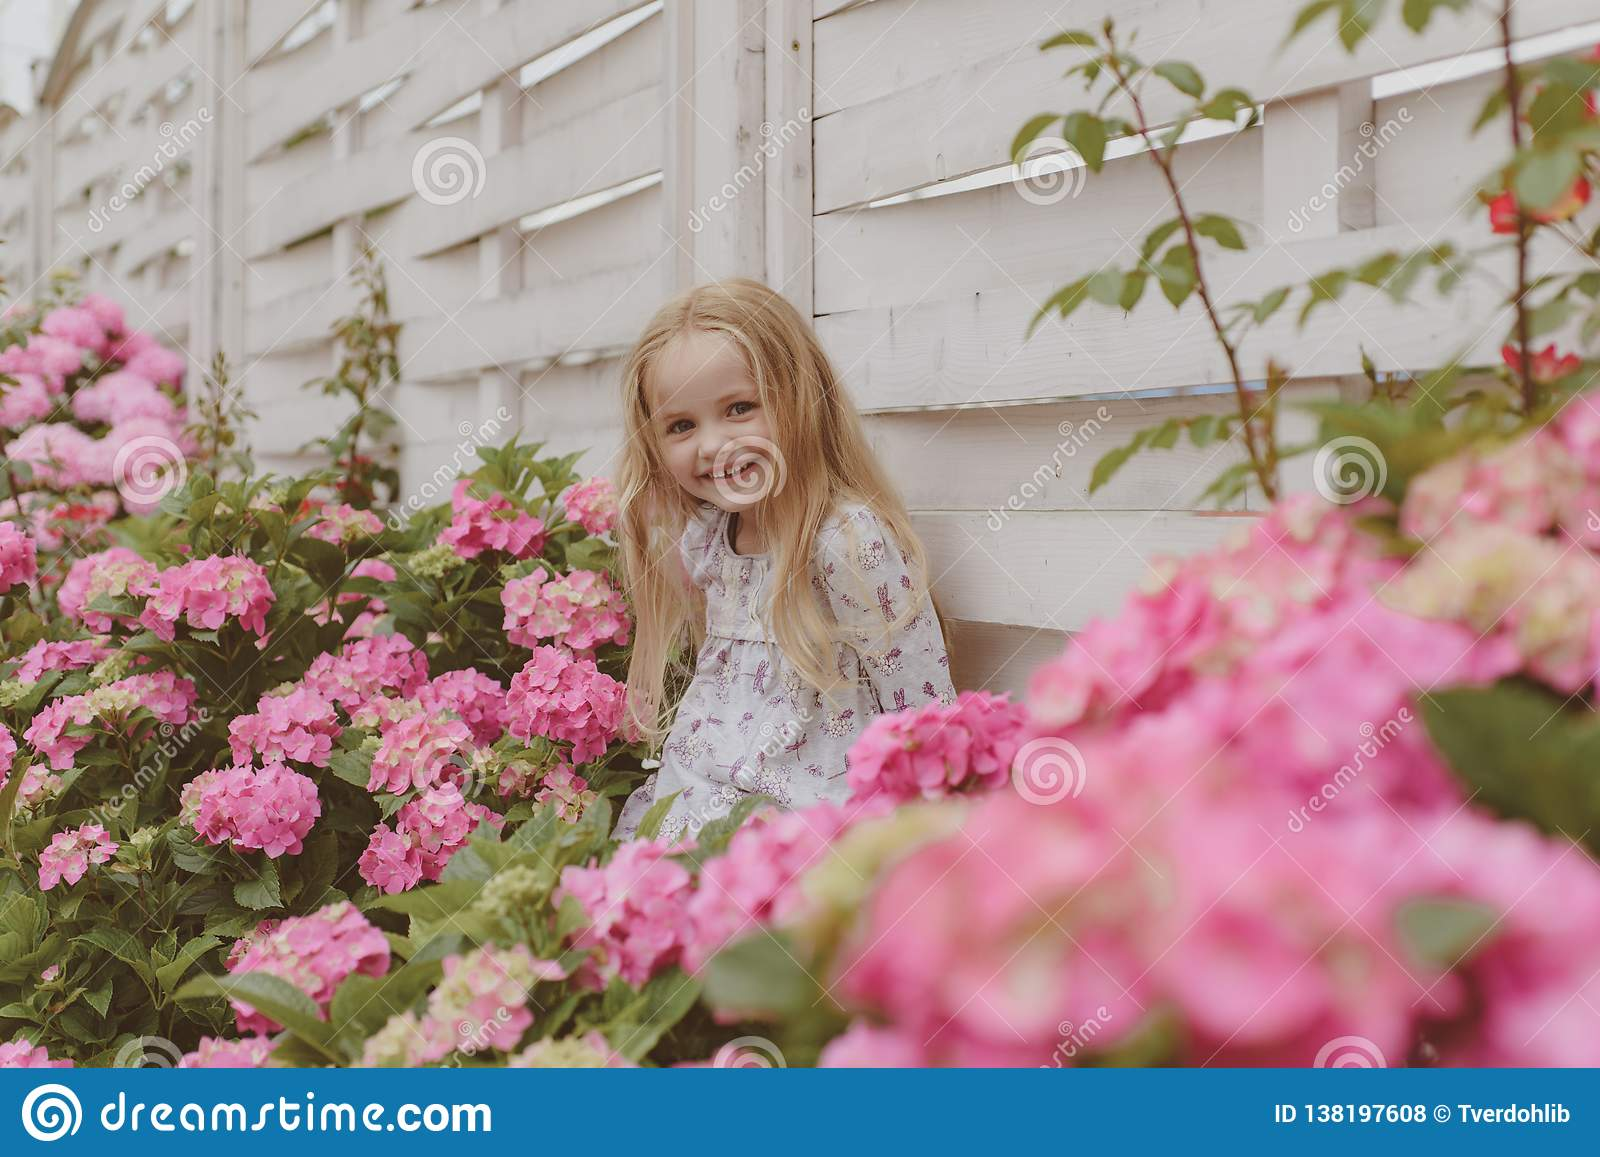 Spring flowers. Childhood. Little girl at blooming flower. Summer. Mothers or womens day. Childrens day. Small baby girl